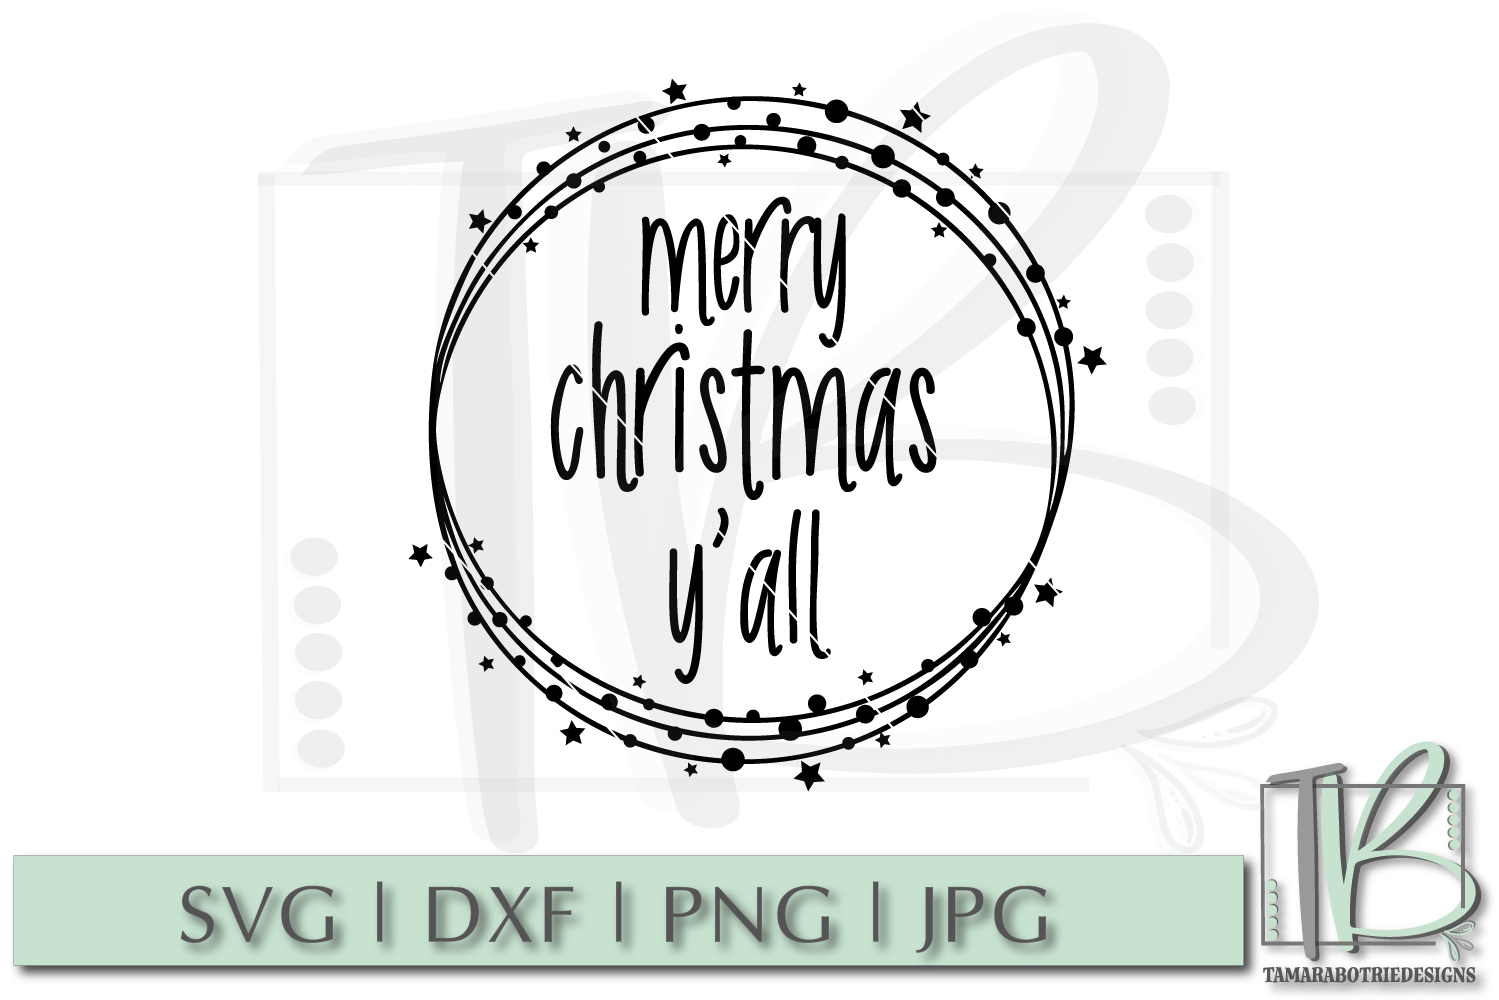 Merry Christmas Y'all SVG, Christmas Cut file example image 2